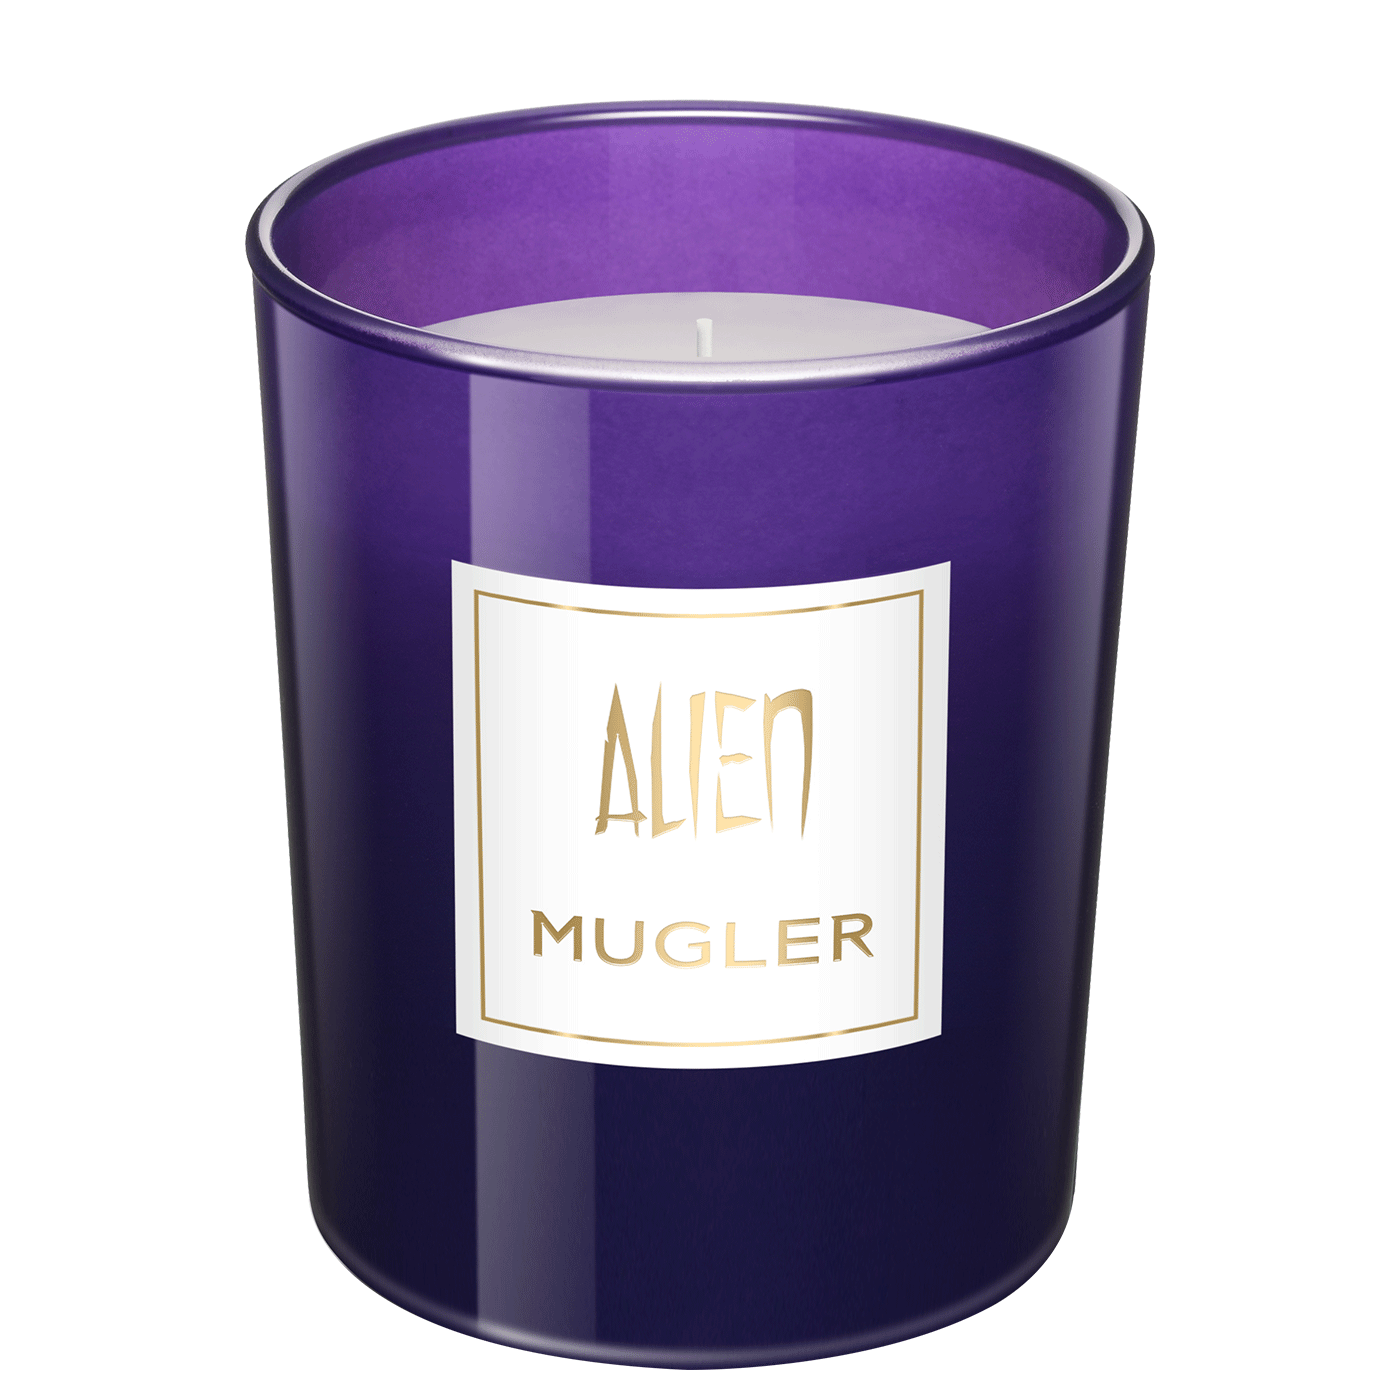 Alien Scented Candle - <p>Create the perfect ambiance at home with the mysterious scent of Alien!  Handcrafted in keeping with waxmaking tradition, Alien candles will give a radiant finishing touch to your interiors.    Fragrance notes: Sambac jasmine, Cashmeran wood, Amber gris</p>